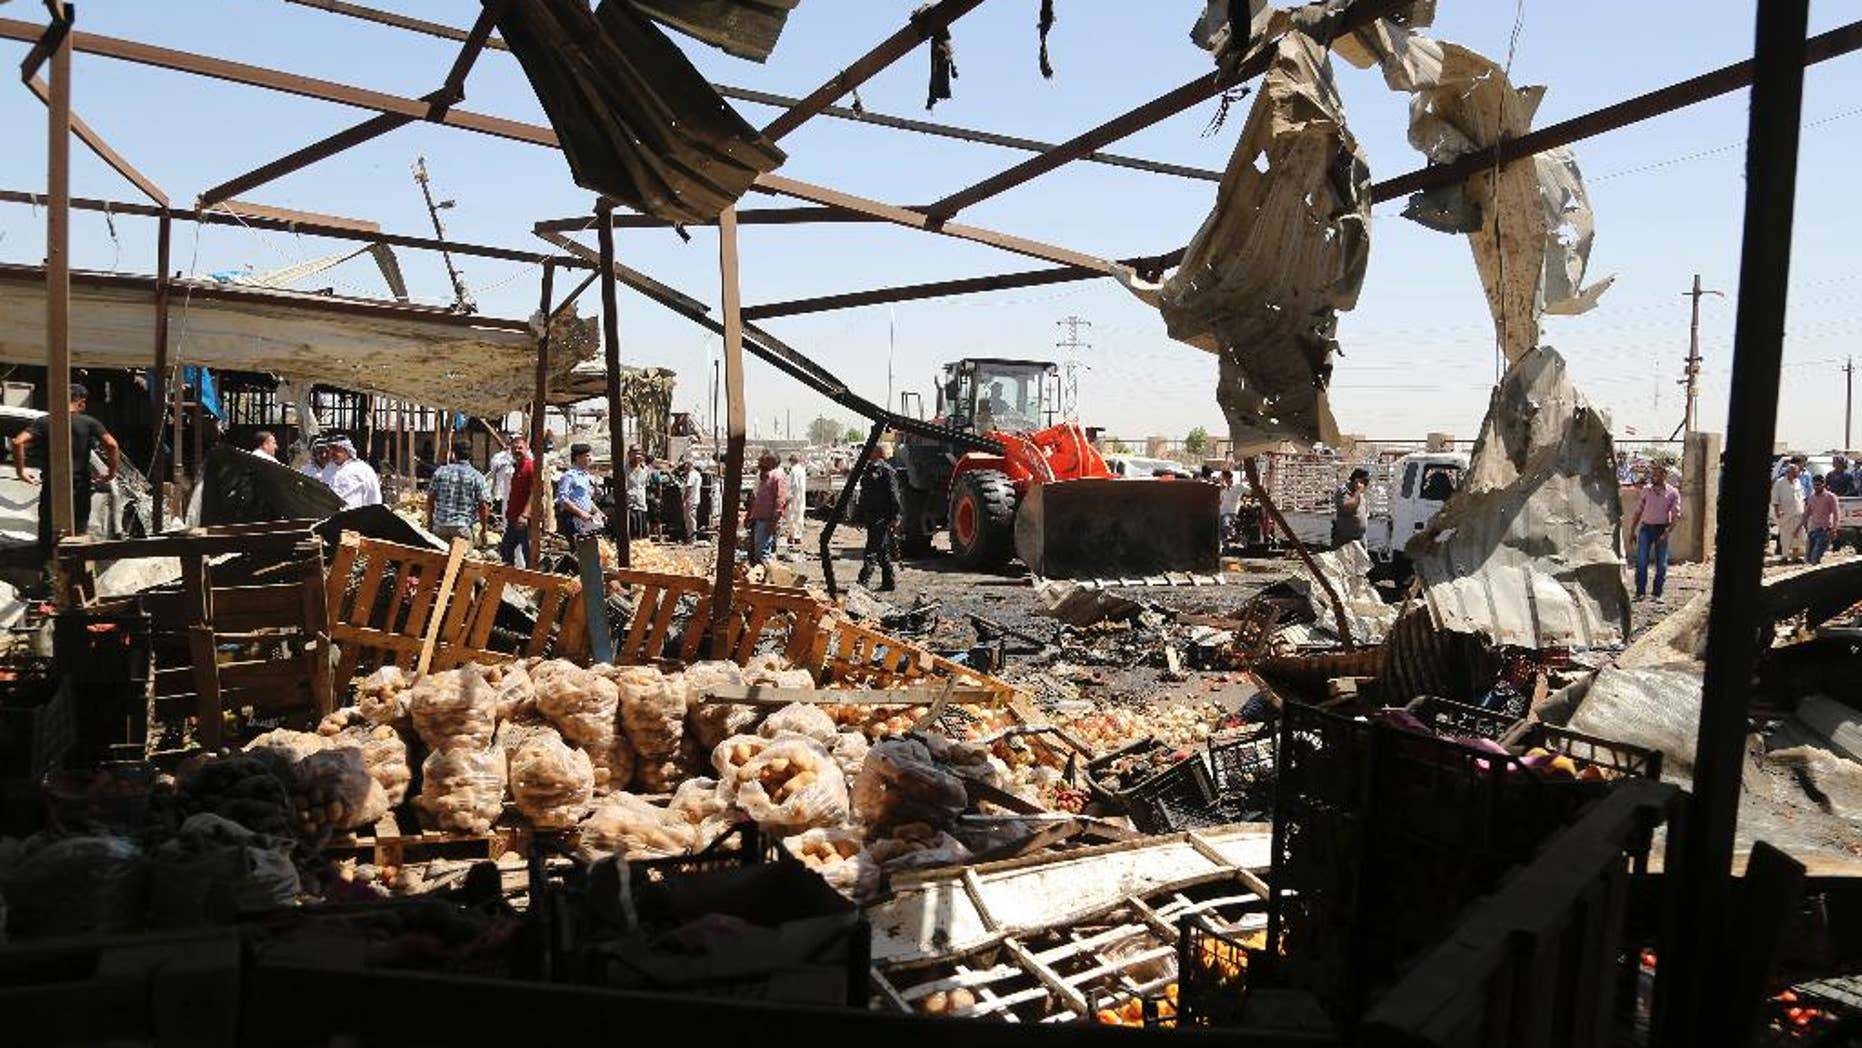 A bulldozer clears rubble at the scene of a deadly suicide car bombing at an outdoor vegetable and fruit market in a Shiite-dominated district in northeastern Baghdad, Iraq, Tuesday, July 12, 2016. The bomb on Tuesday, killed at least 10 people and injured tens of others, officials said. The developments came on the heels of two large-scale attacks claimed by the Islamic State group that killed more than 300 people last week. (AP Photo/Karim Kadim)